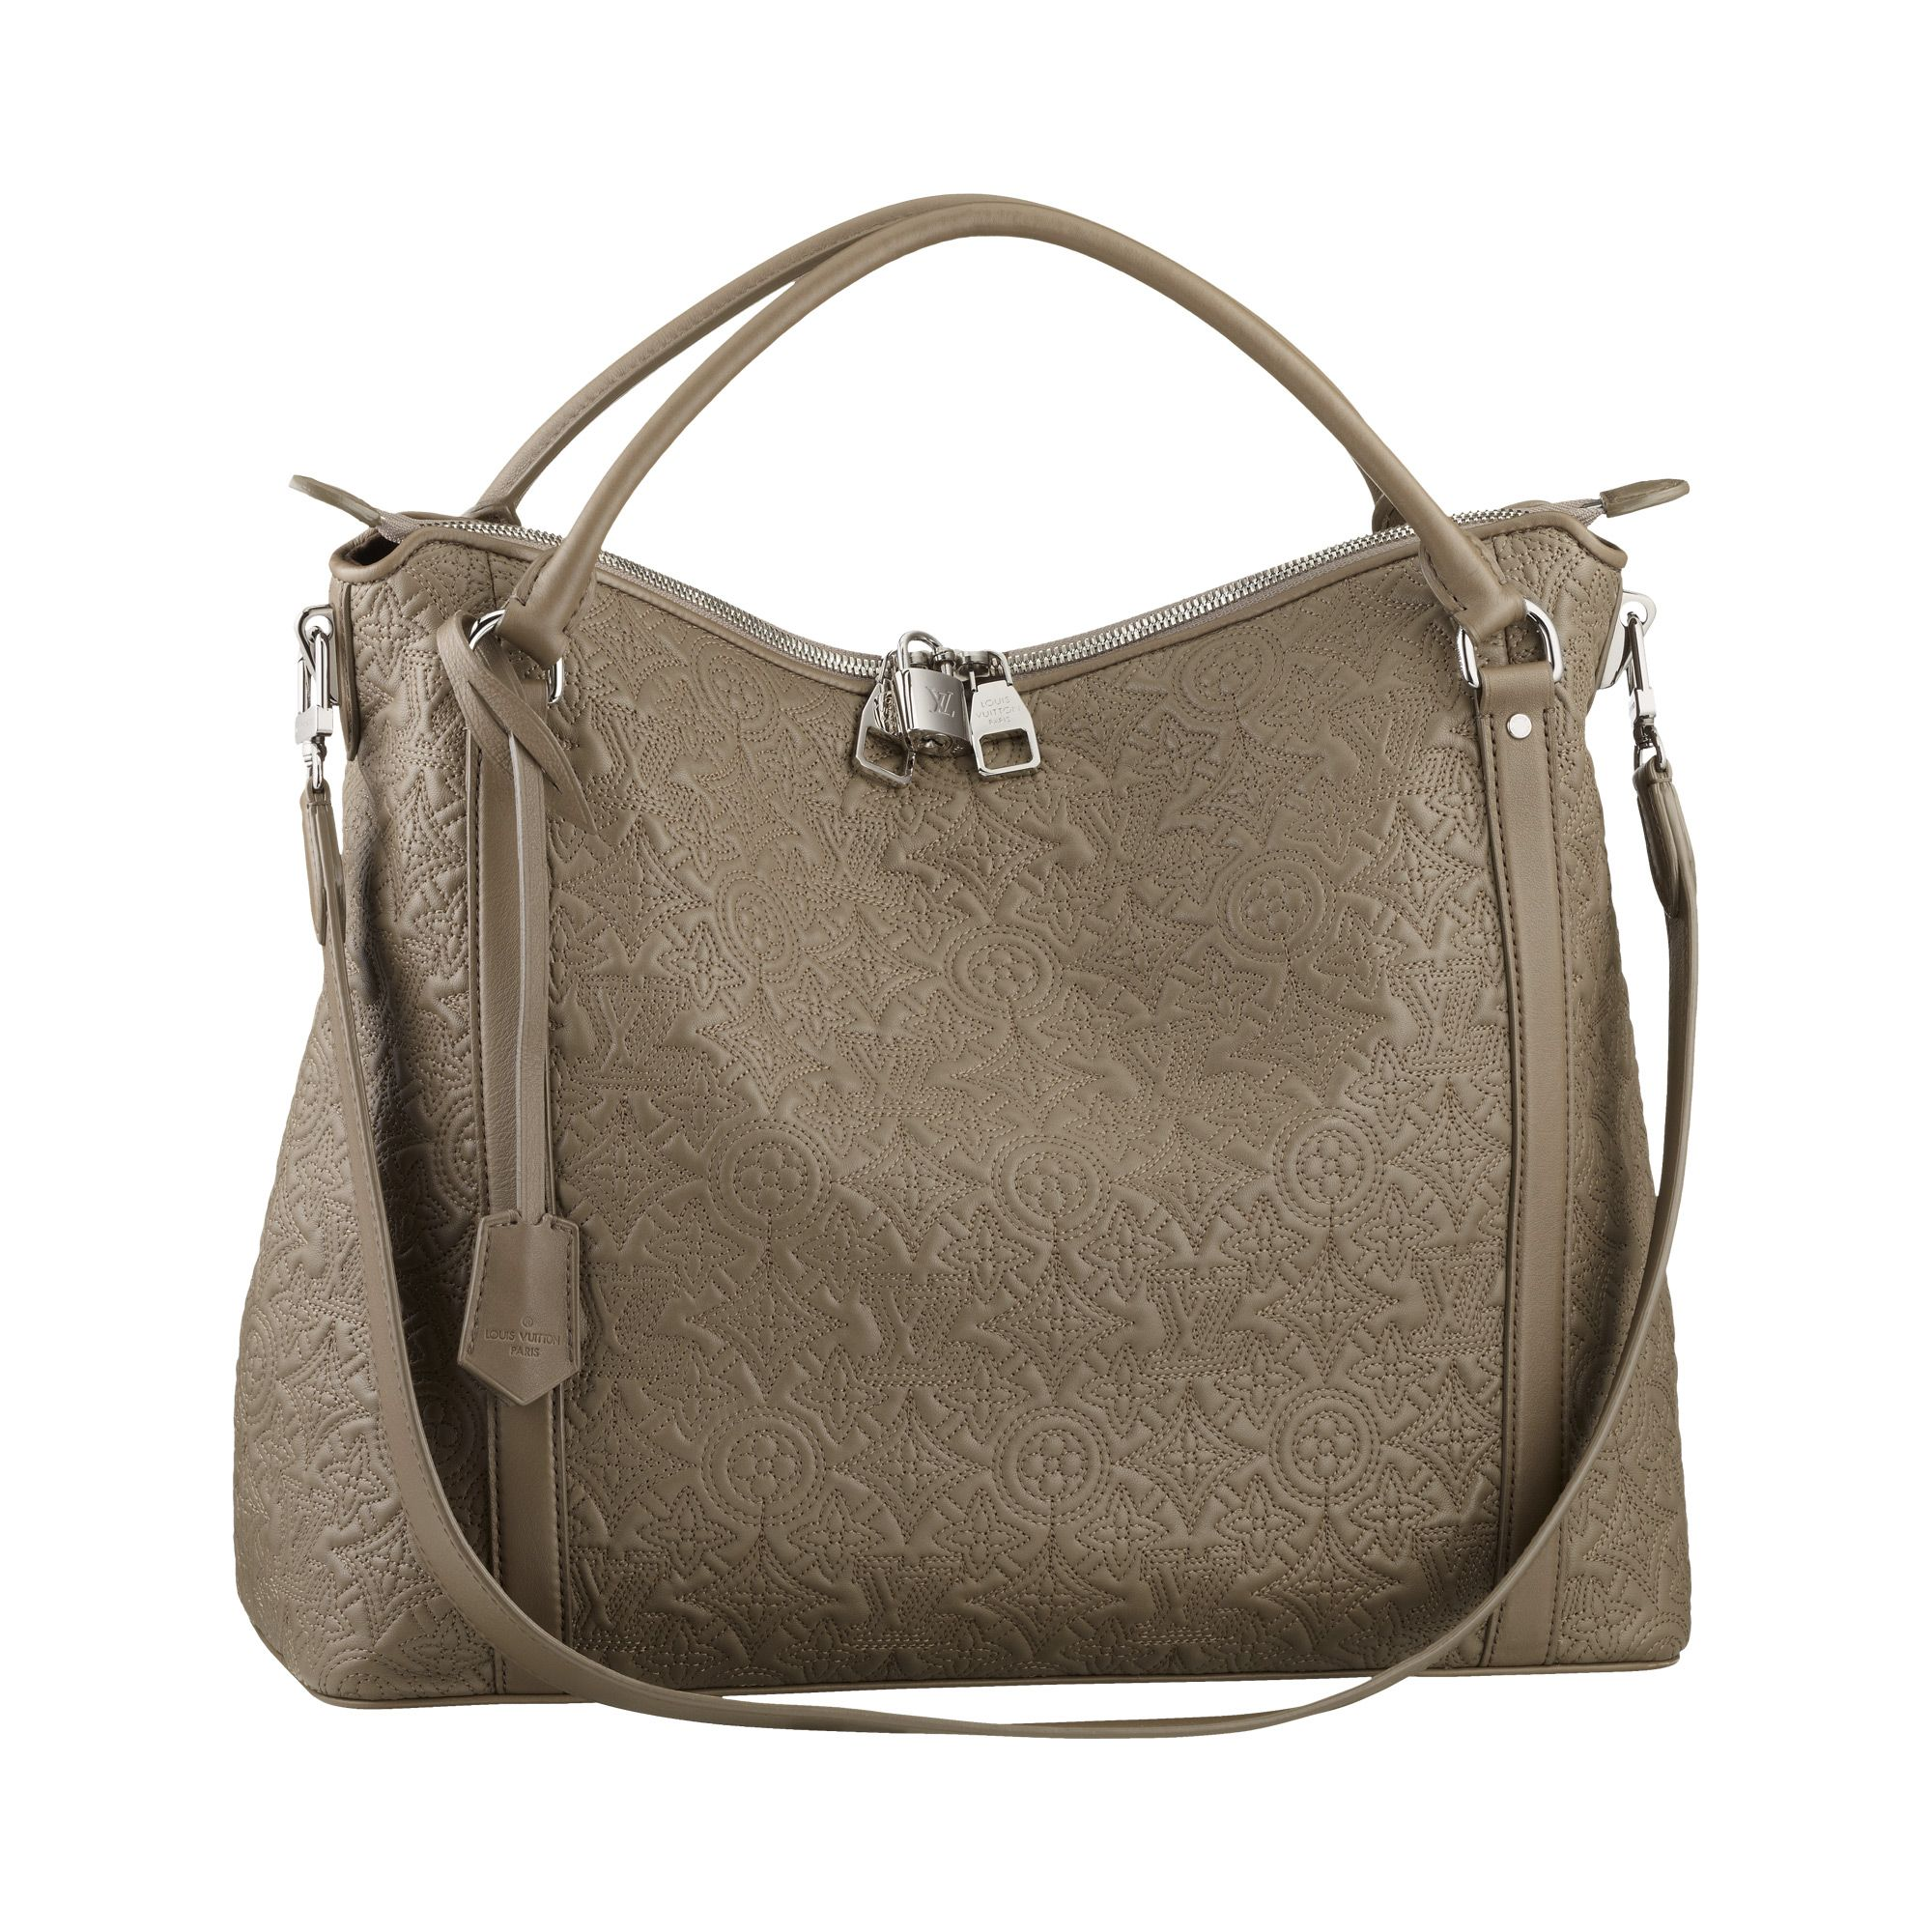 d5d294b90db91 Louis Vuitton Ixia MM Bag In Antheia Leather | Bags, Taschen ...